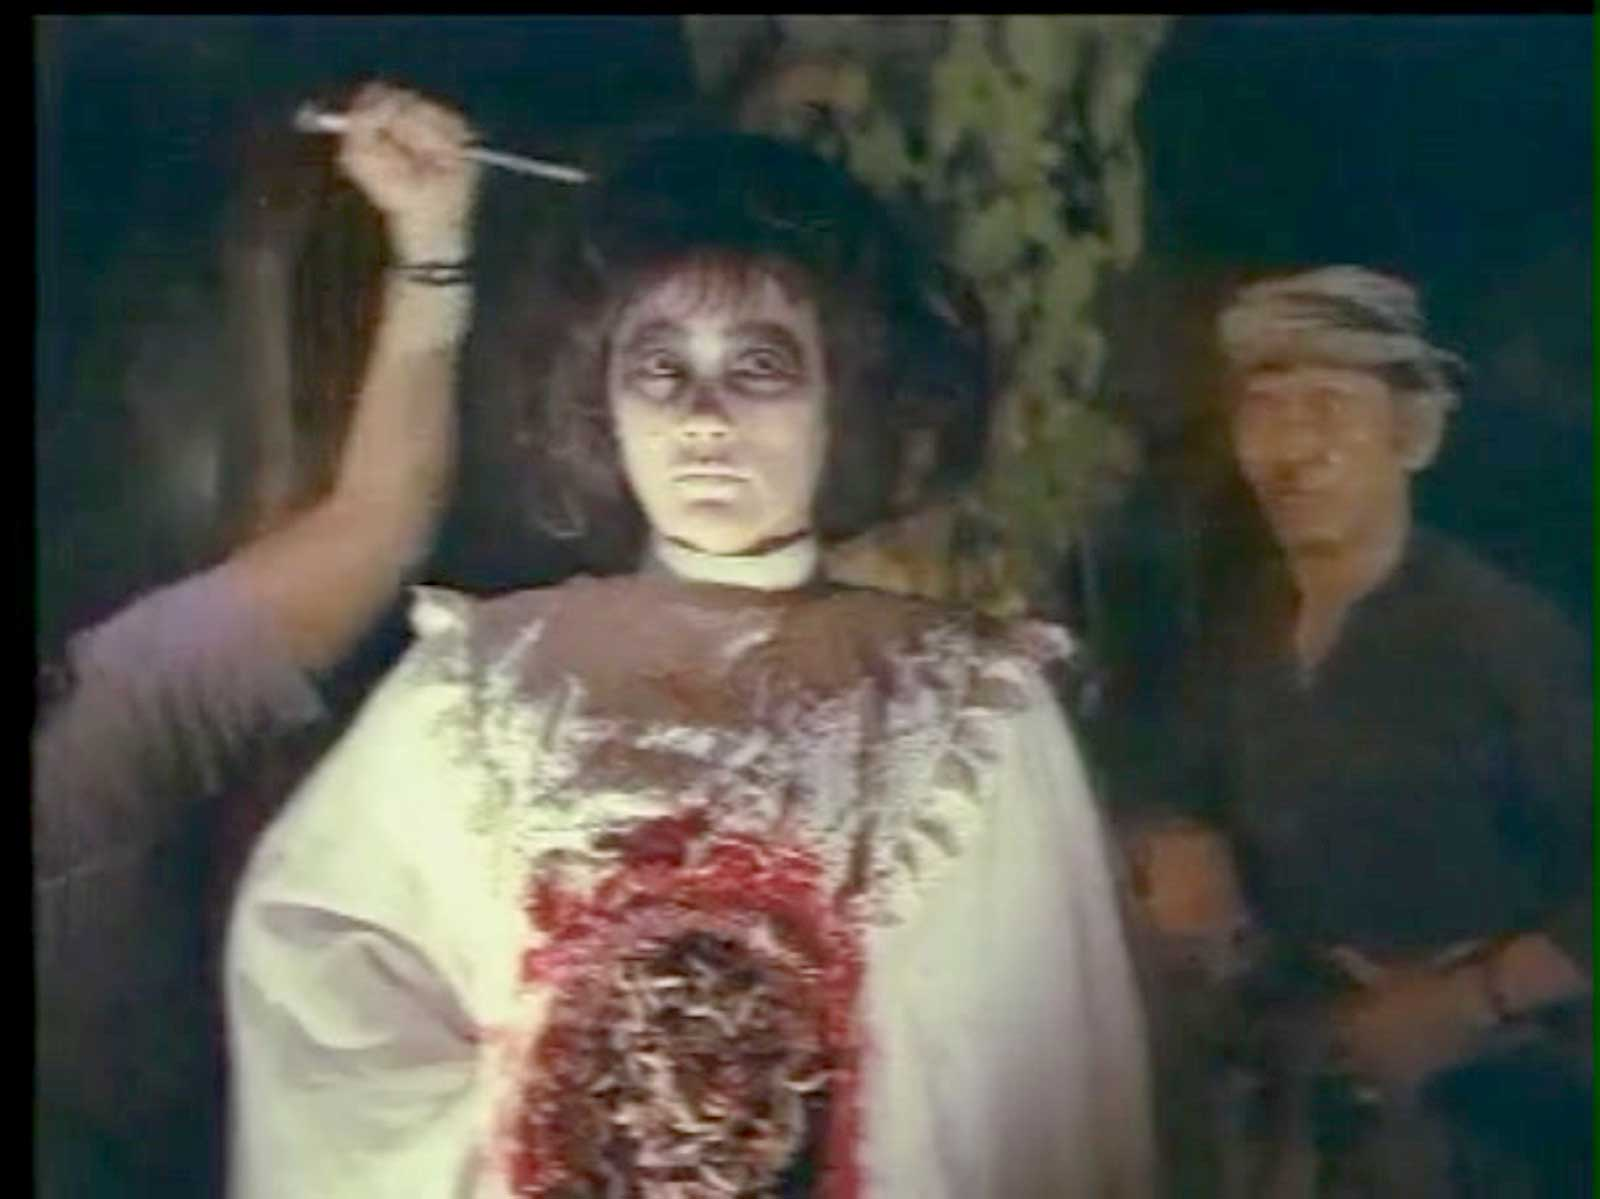 feminine-grotesque-in-indonesian-horror-films_01_